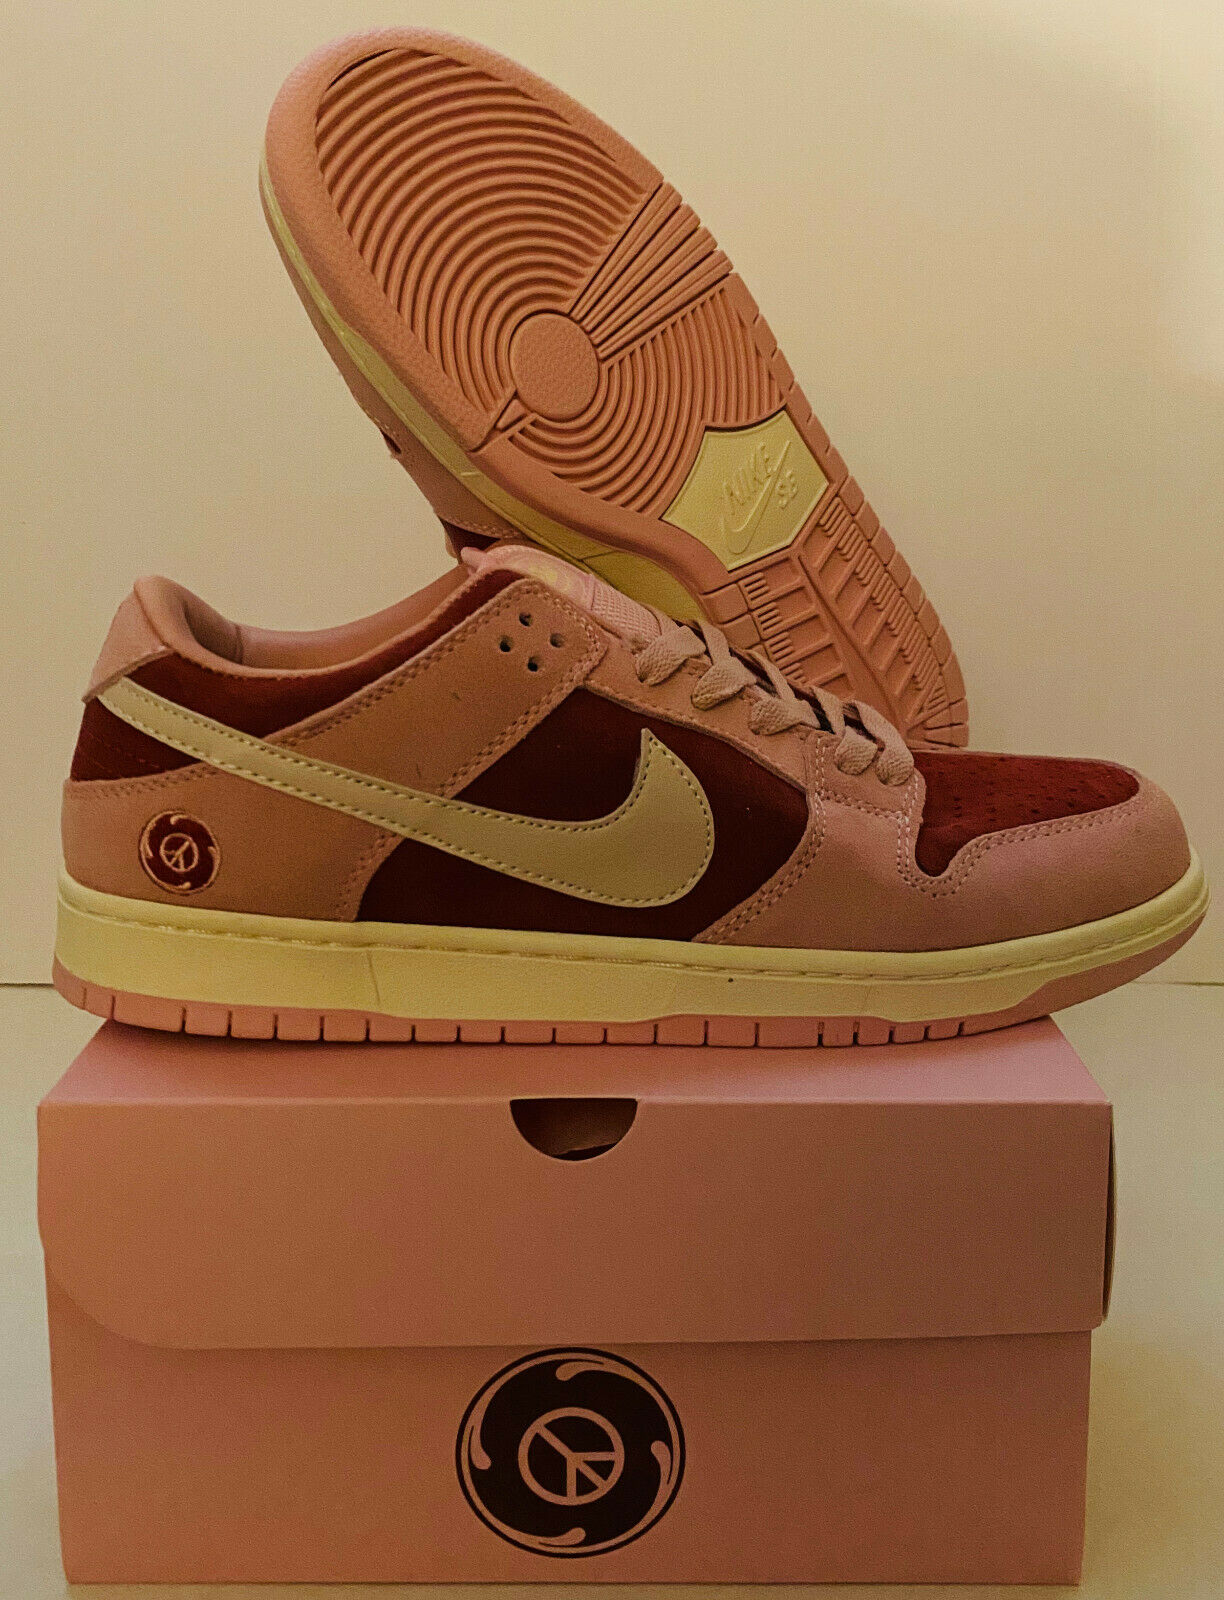 NIKE SB DUNK LOW STILLZ RED VELVET SIZE 10.5 NEW